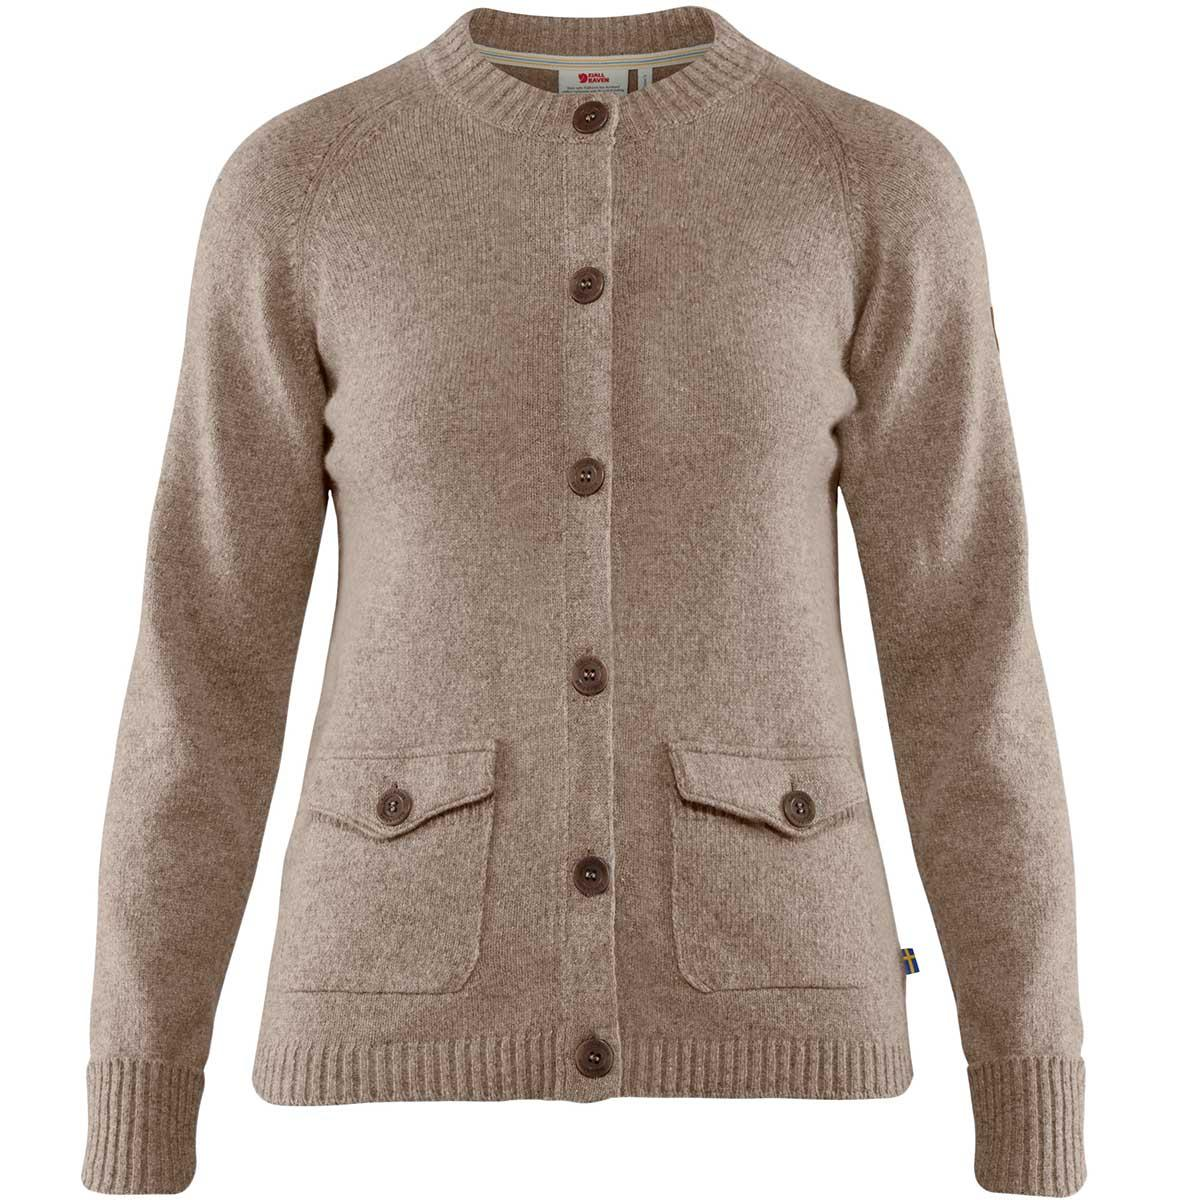 Fjallraven women's Greenland Re-Wool Cardigan in Driftwood front view